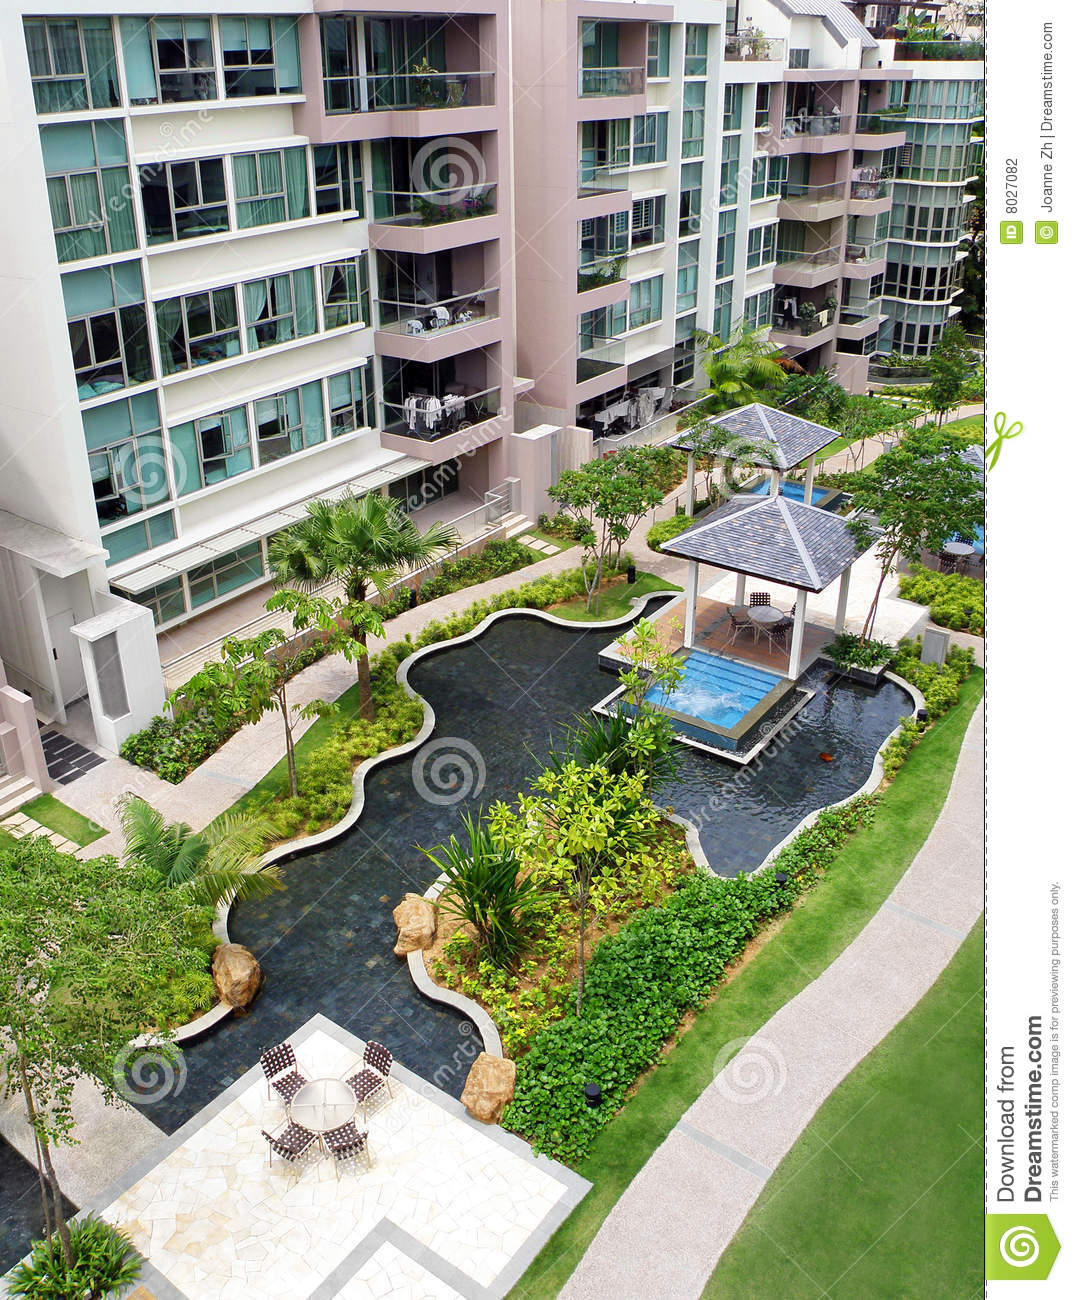 Landscape Design Outdoor Construction Residential: Modern Condominiums Garden Landscaping Stock Photo